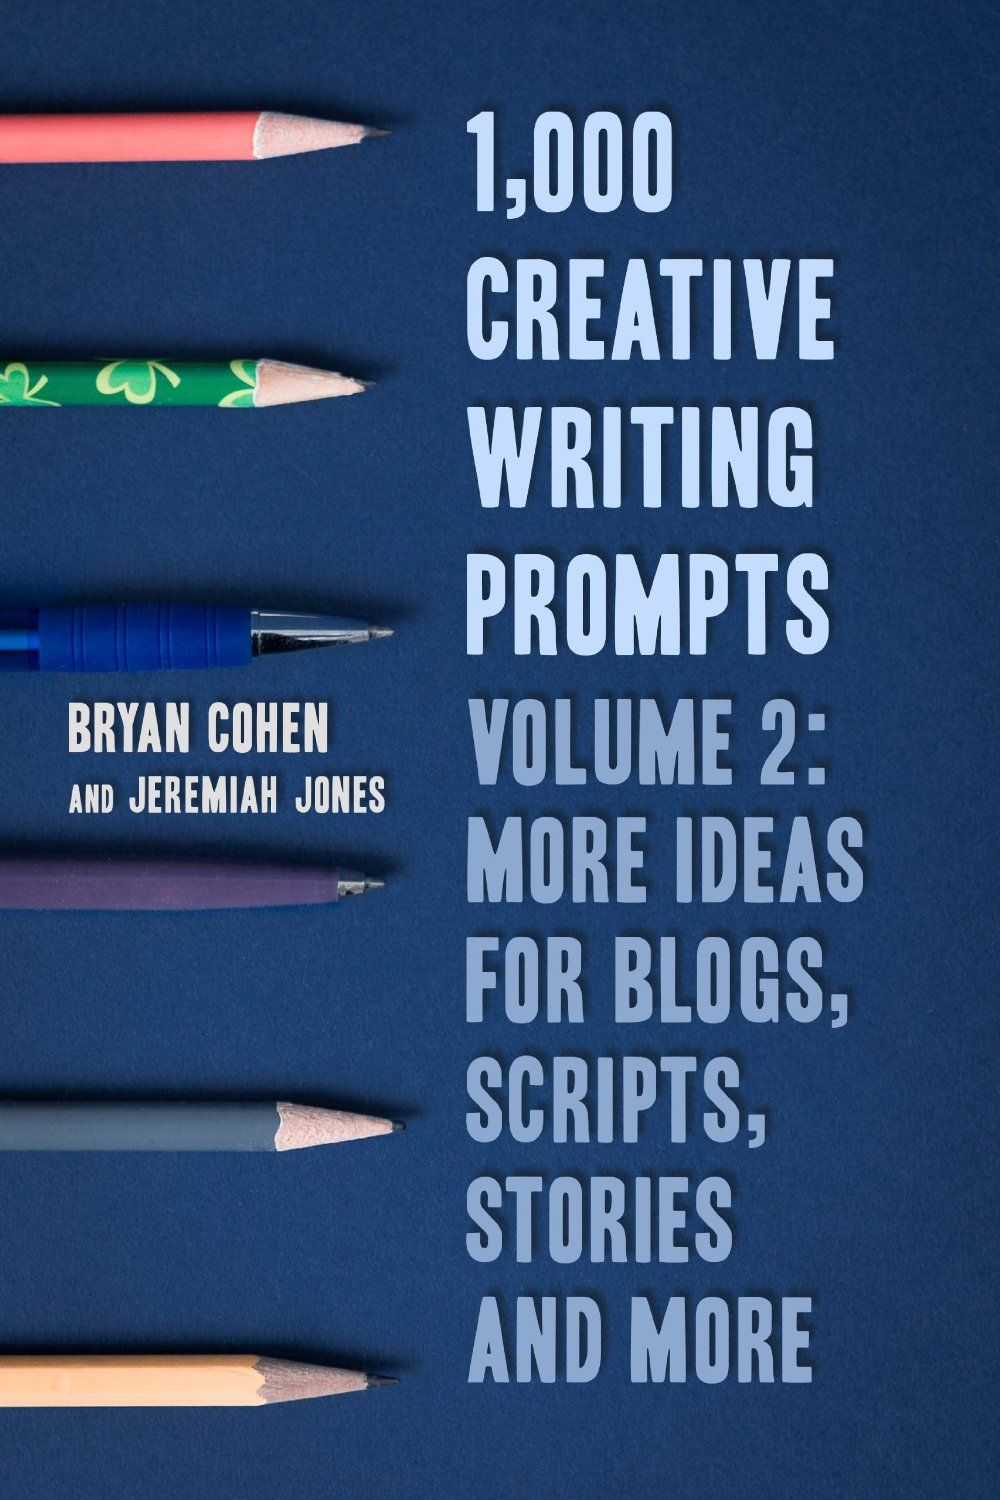 1,000 Creative Writing Prompts, Volume 2: More Ideas for Blogs, Scripts,  Stories